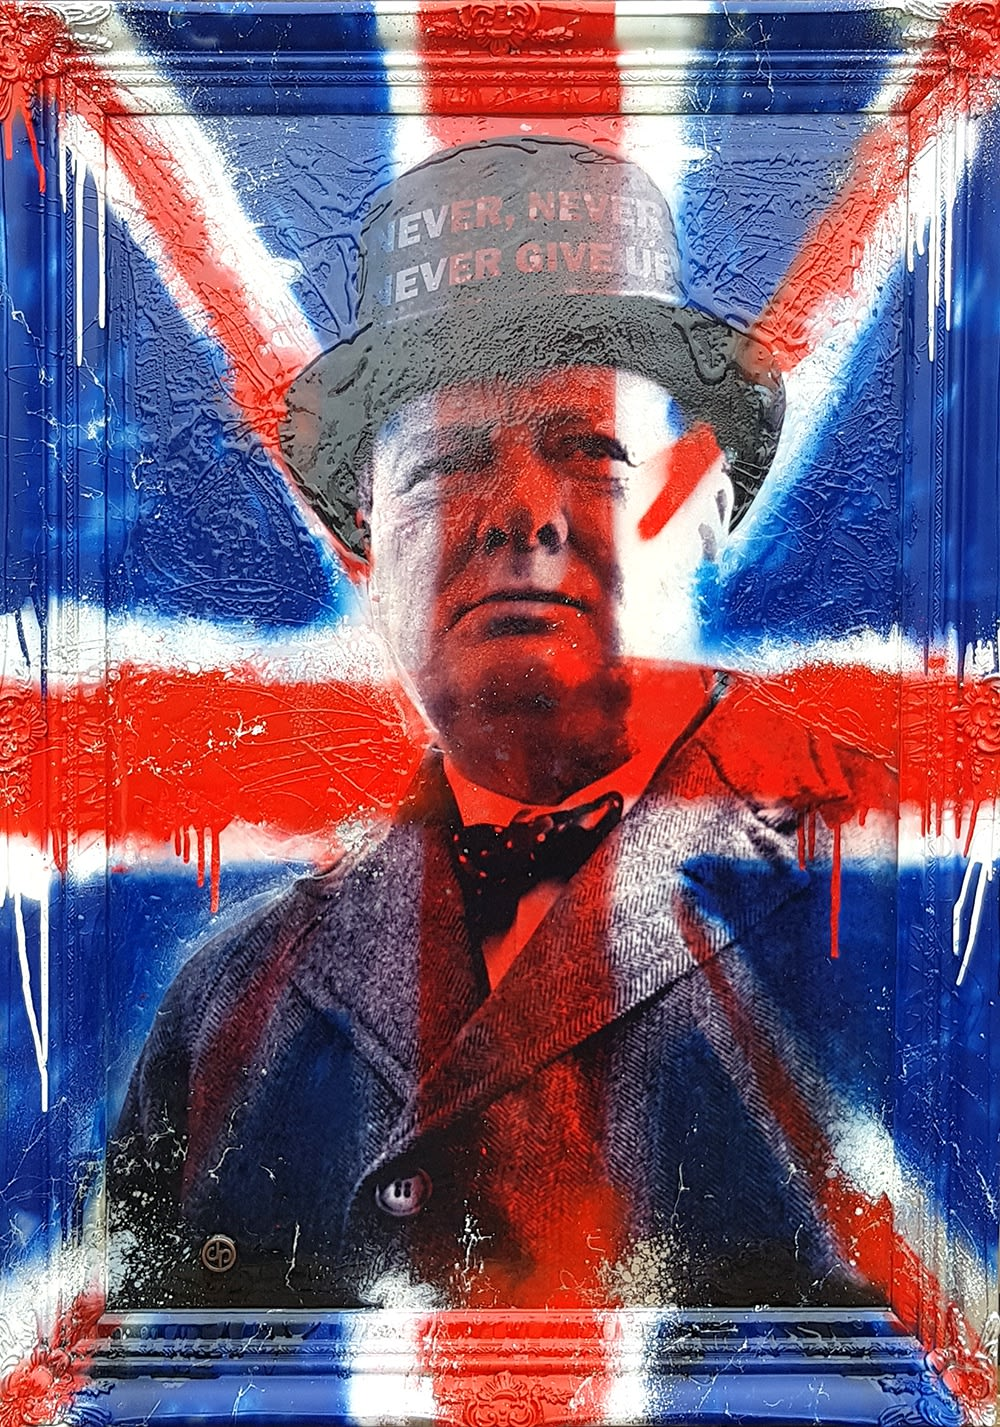 "Dan Pearce Title: Winston - Never Give Up Size: 28.5"" x 40"" Price: £1,750 (Framed)"